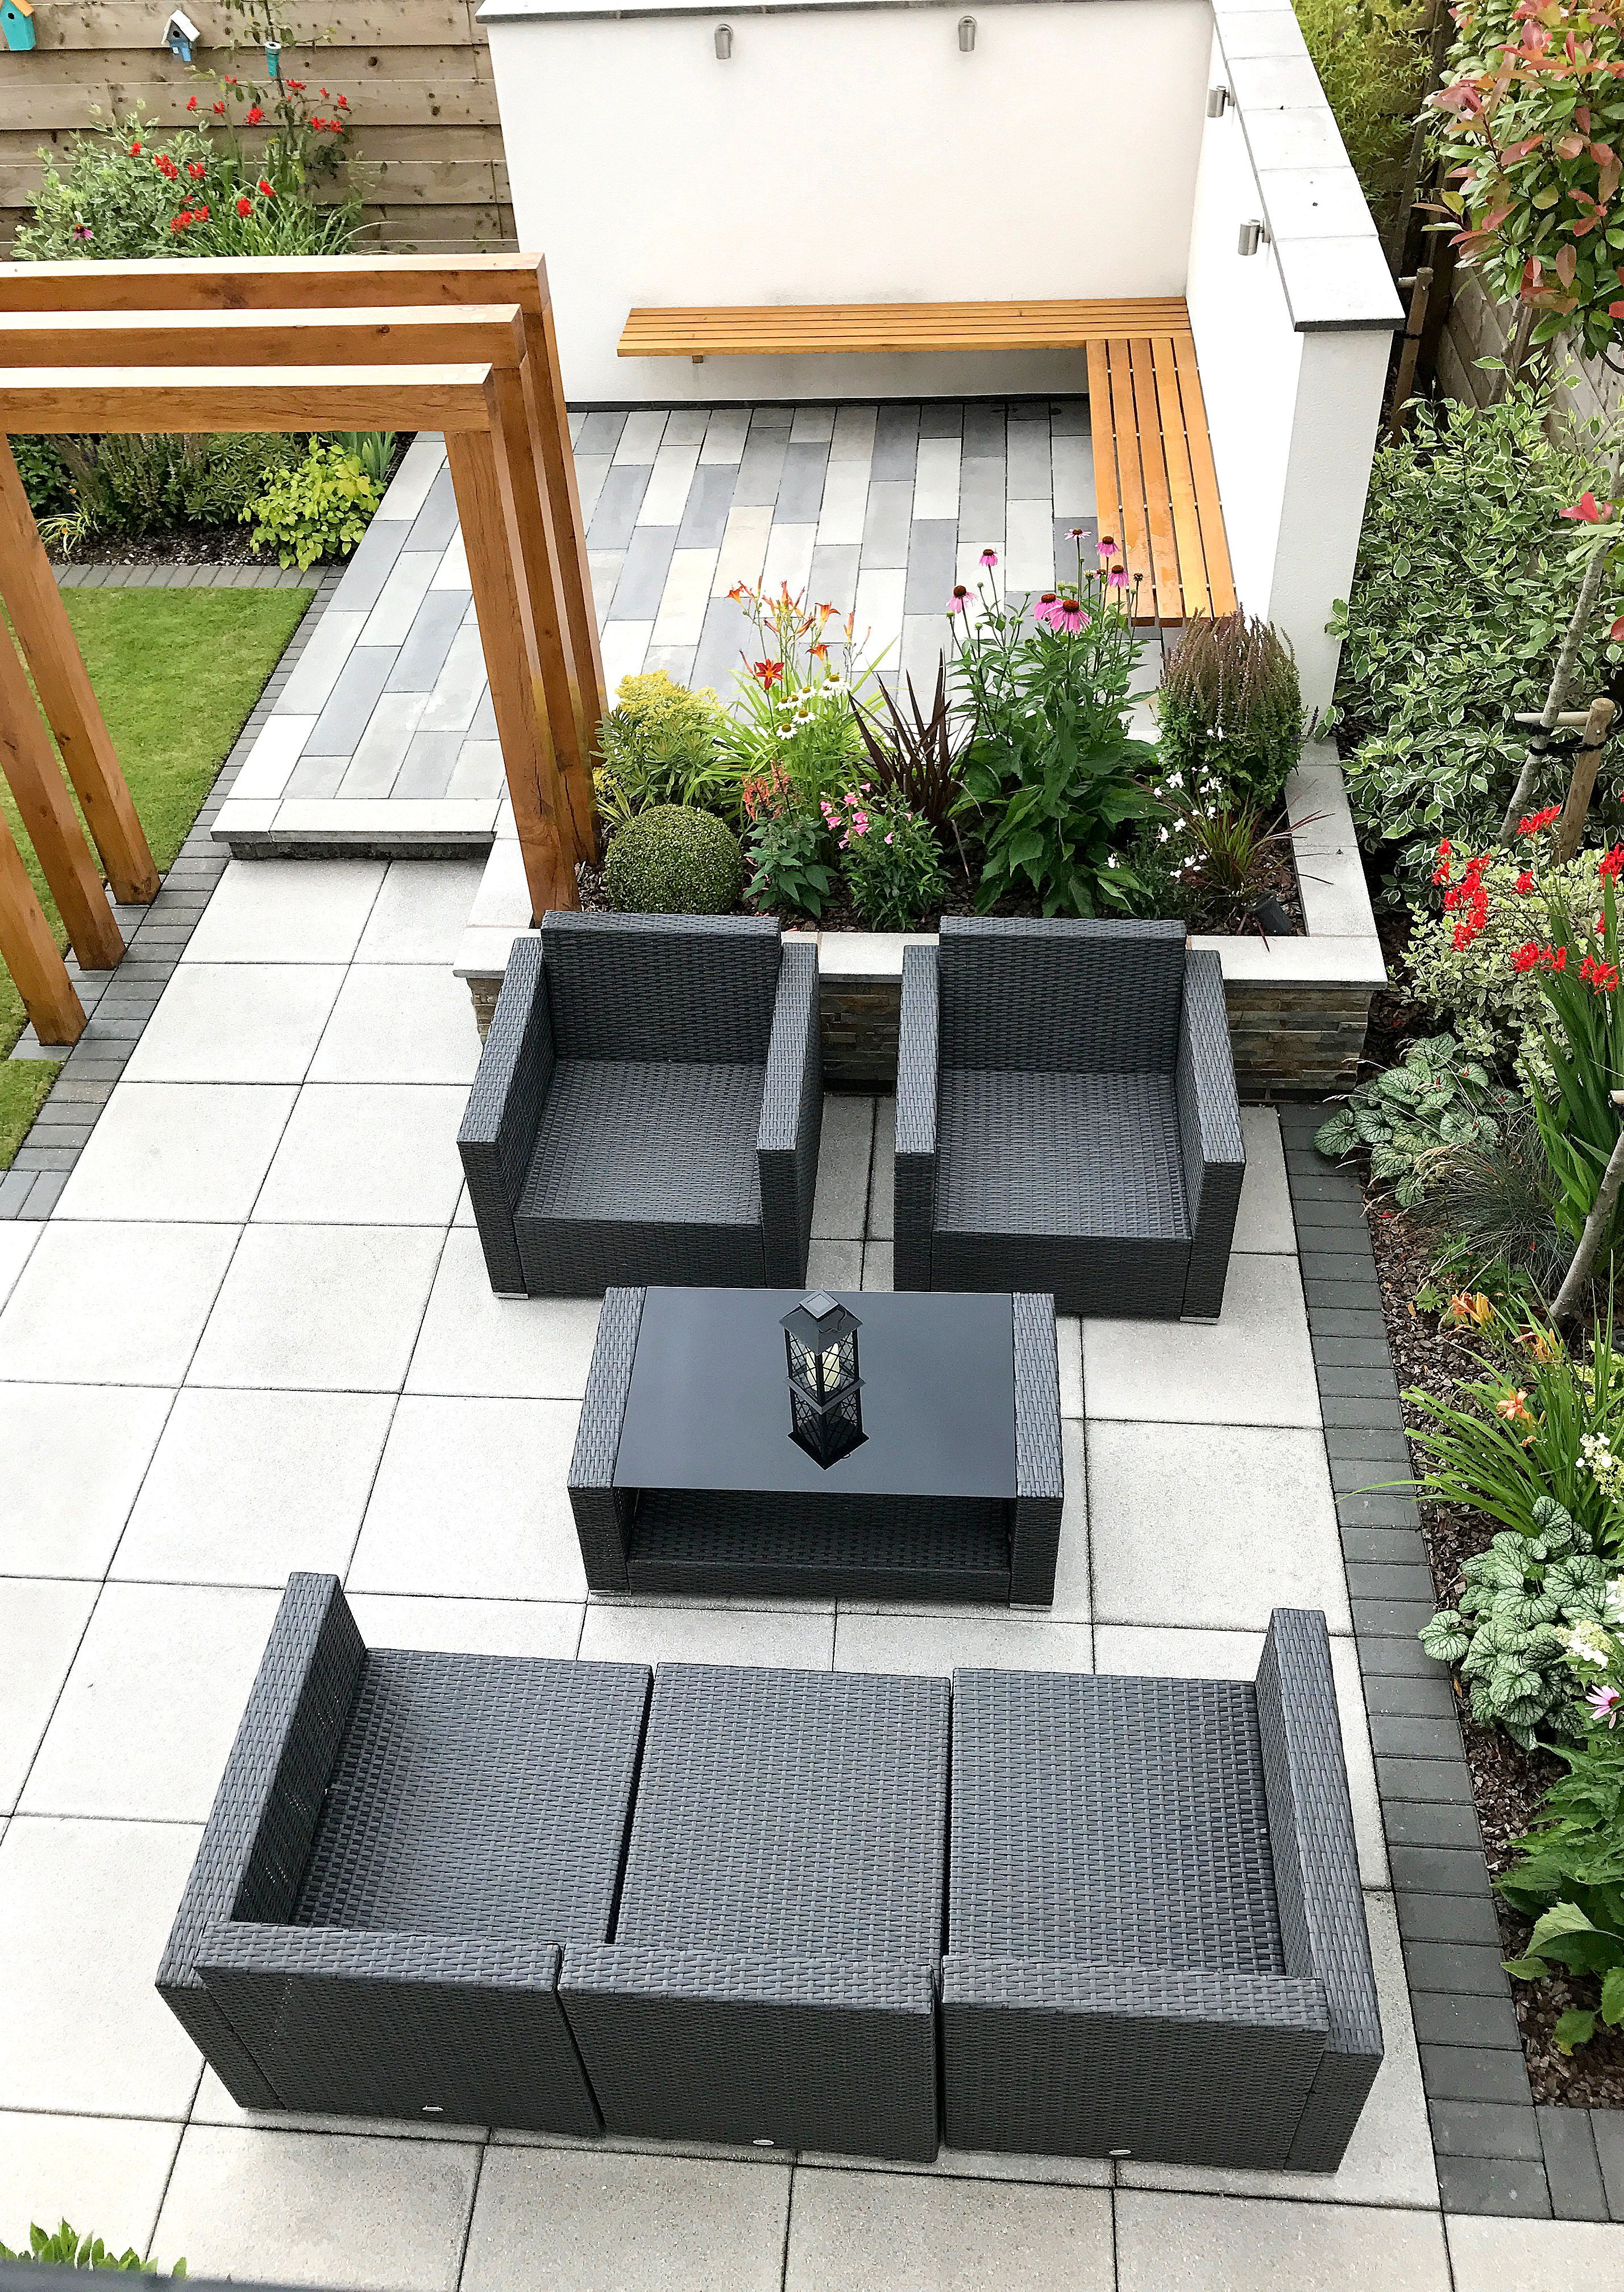 A Modern New Build Garden With Outdoor Entertaining Space For Our Clients In North Nottinghamshire New Build Garden Ideas Garden Ideas Uk Garden Design Layout